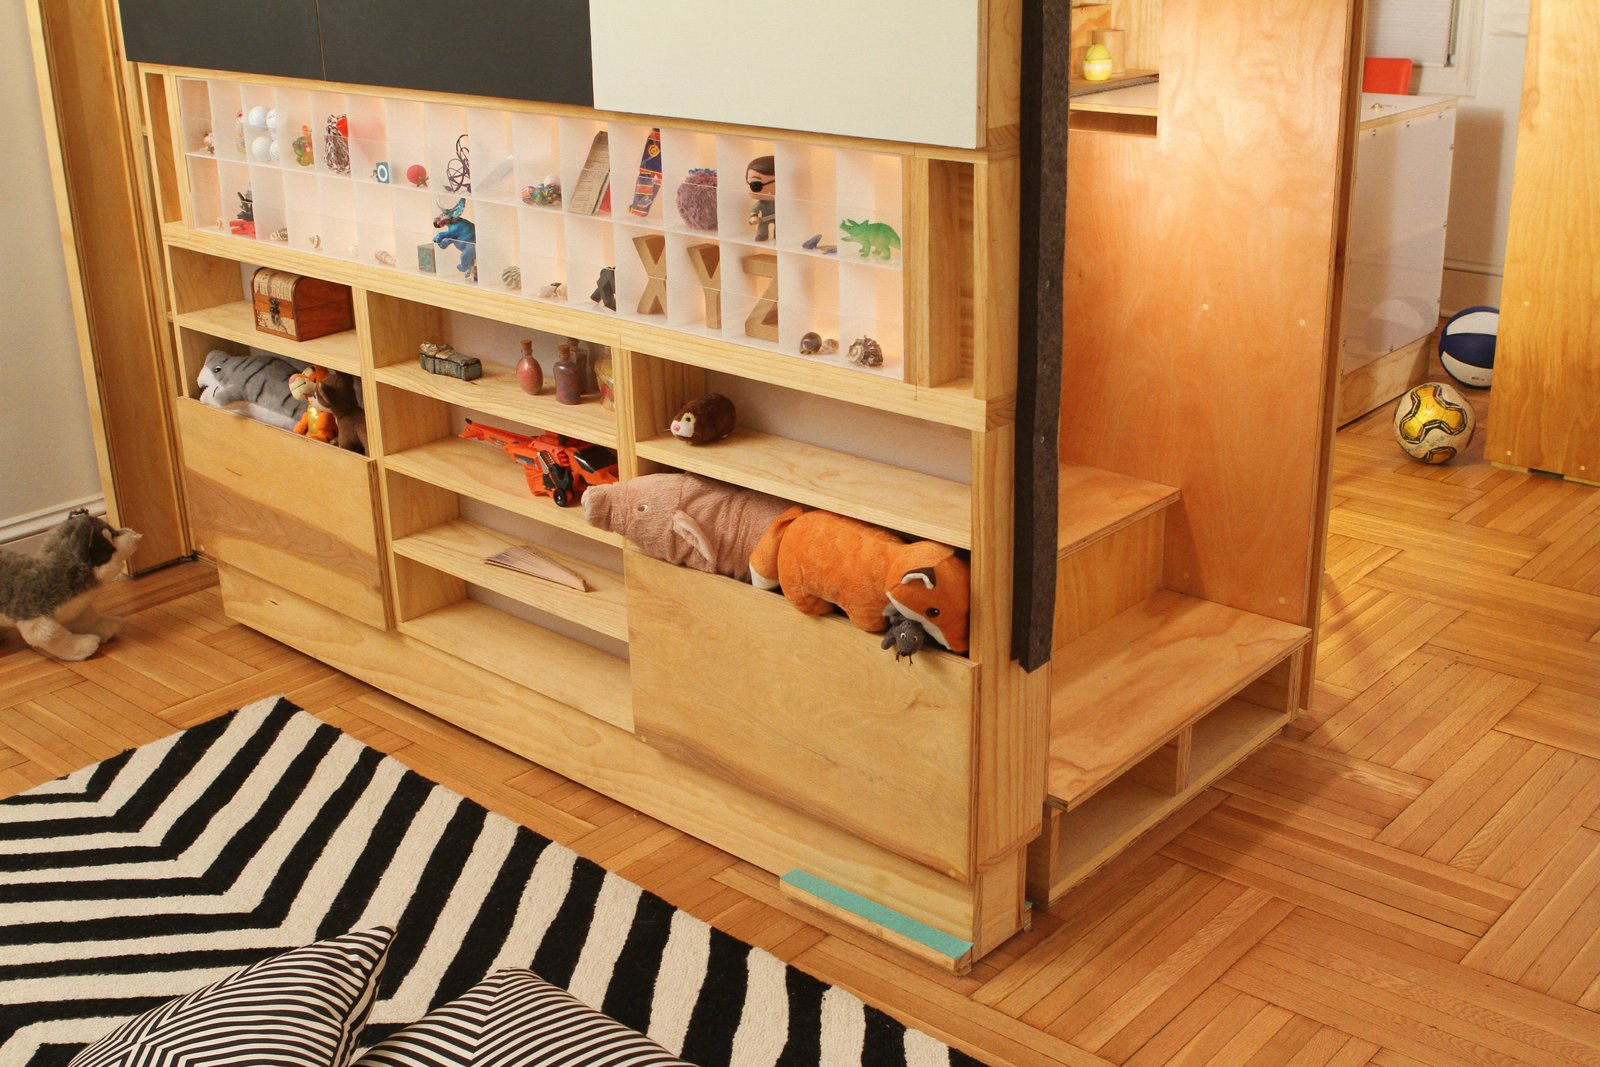 Kids, Bedroom, Playroom, Storage, Shelves, Bookcase, Medium Hardwood, Pre-Teen, Boy, and Neutral Close-up stair to sleeping loft with storage compartments, including back-lit acrylic display box  Best Kids Pre-Teen Medium Hardwood Photos from LO Residence Playroom/Bedroom